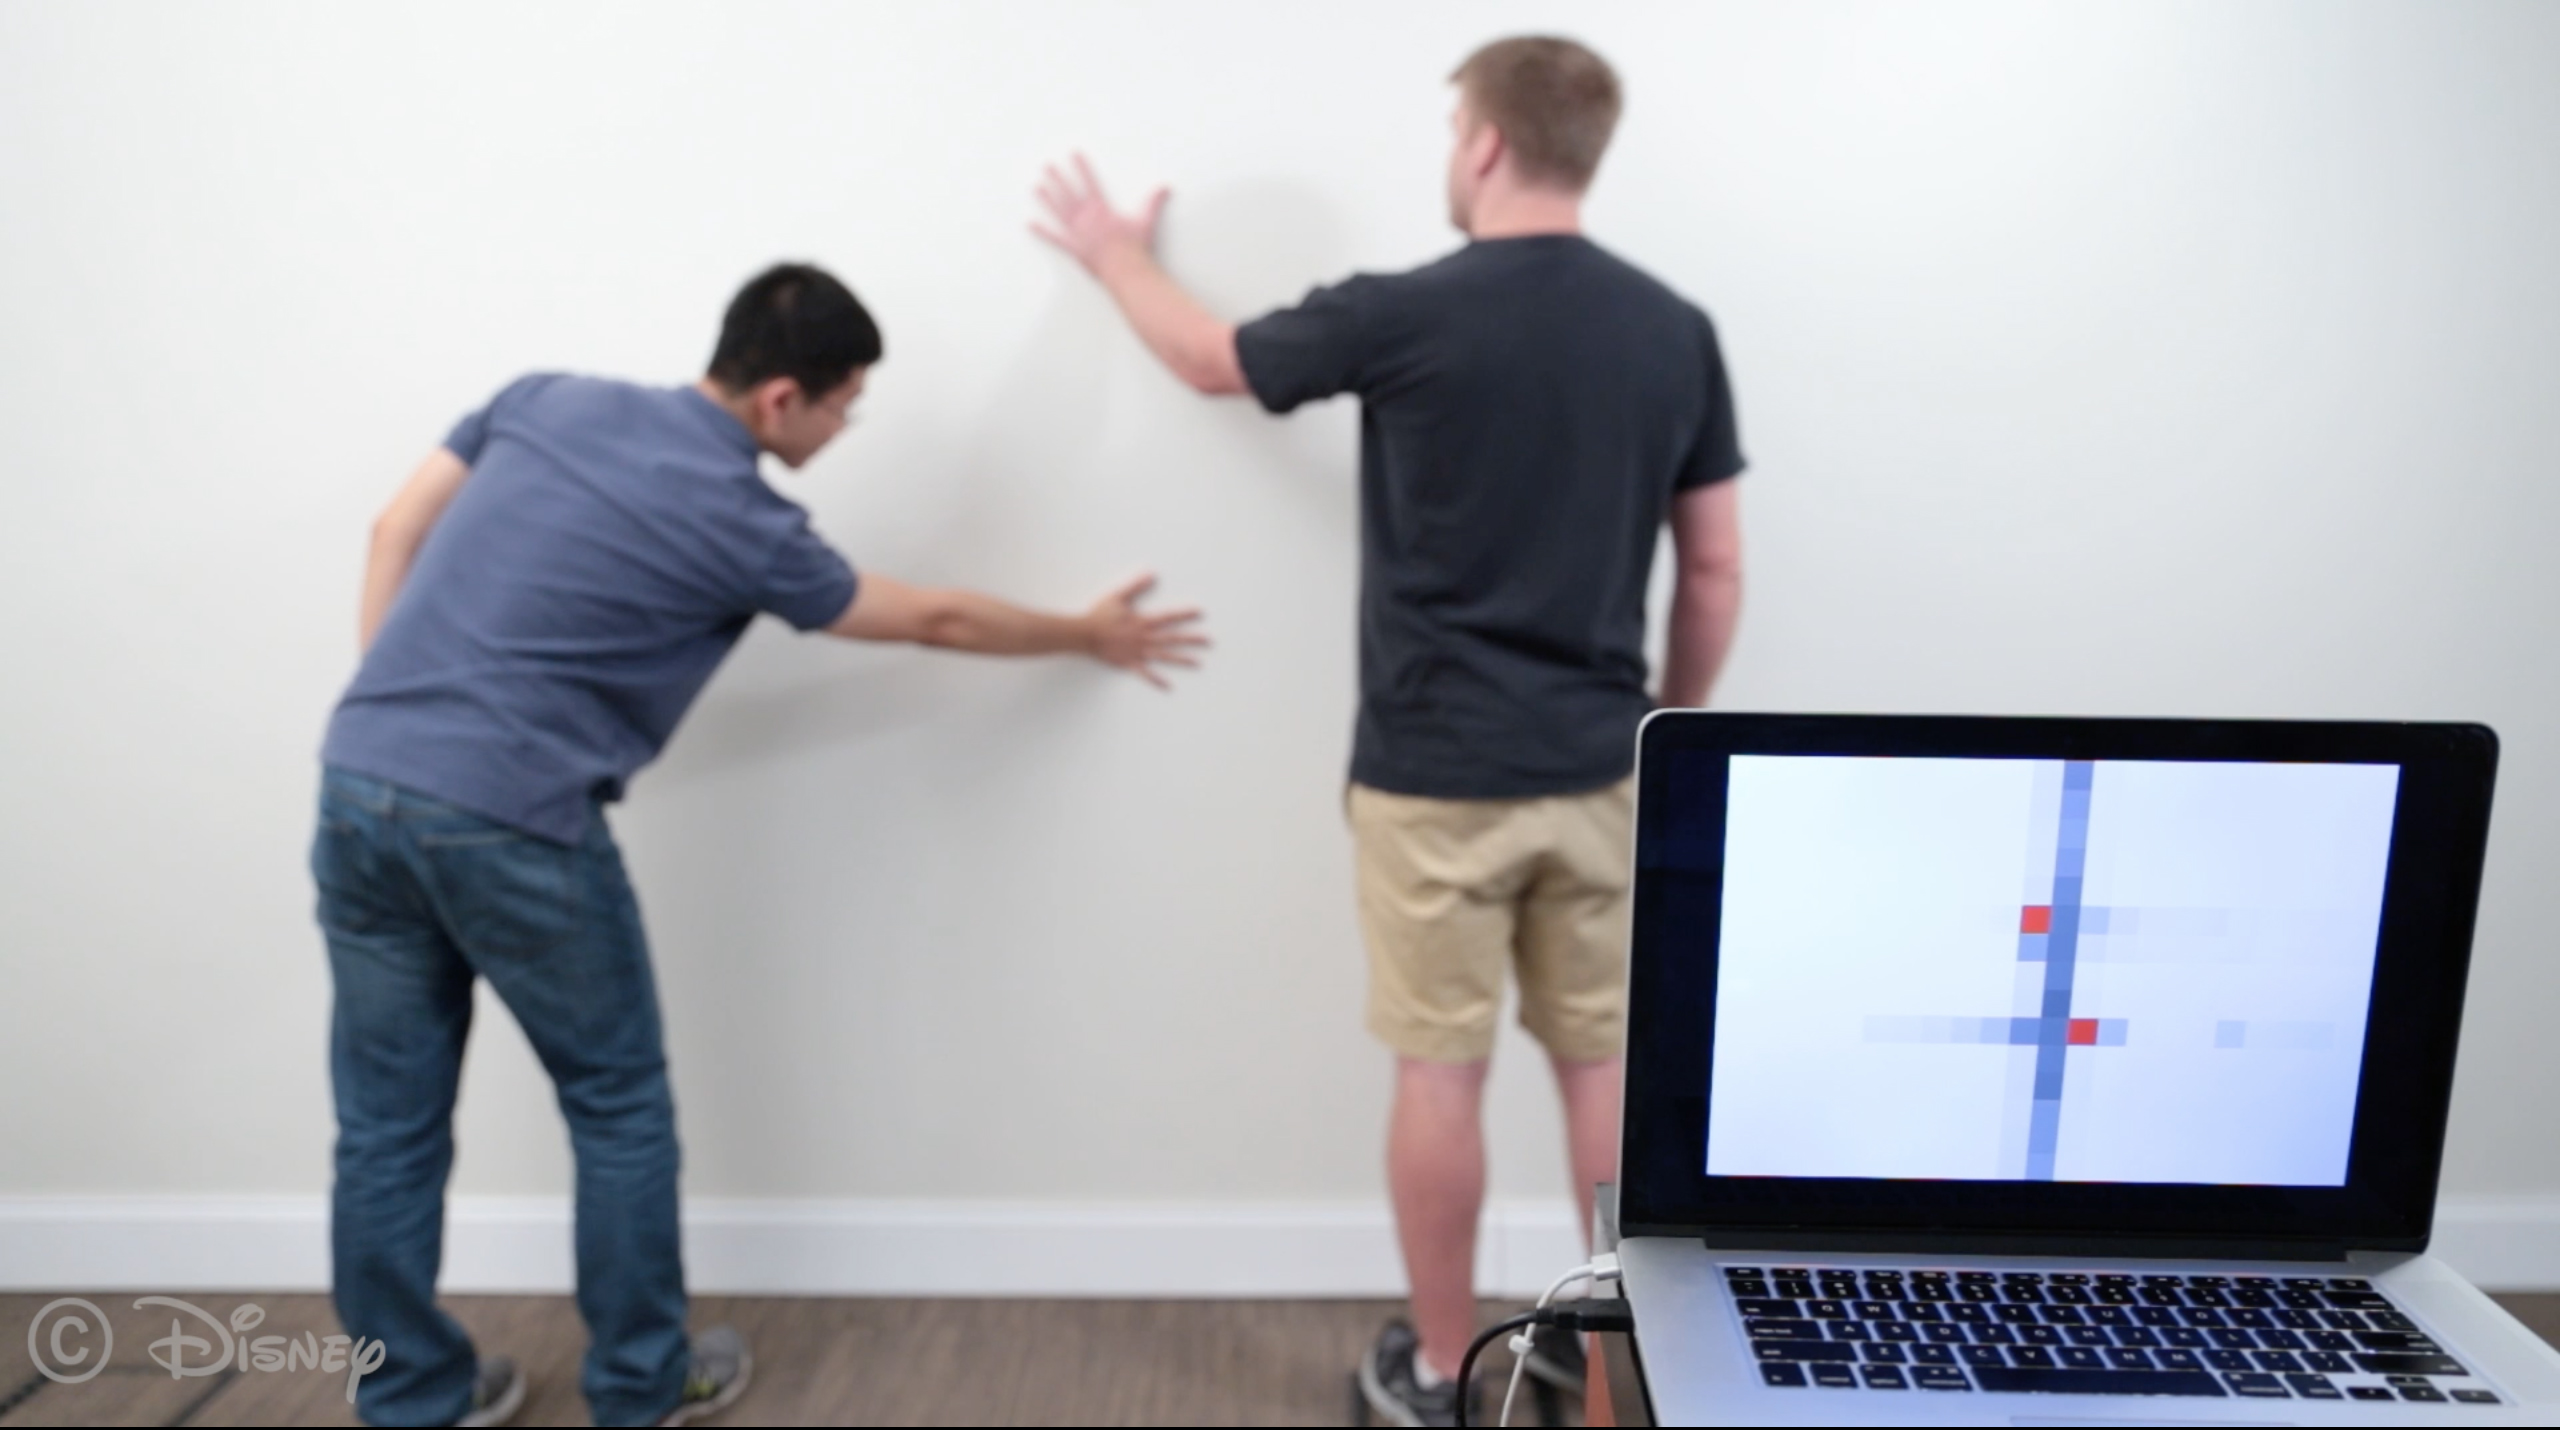 a person touches a wall in 2 places which is recognized by the wall's sensors and displayed on a nearby laptop screen